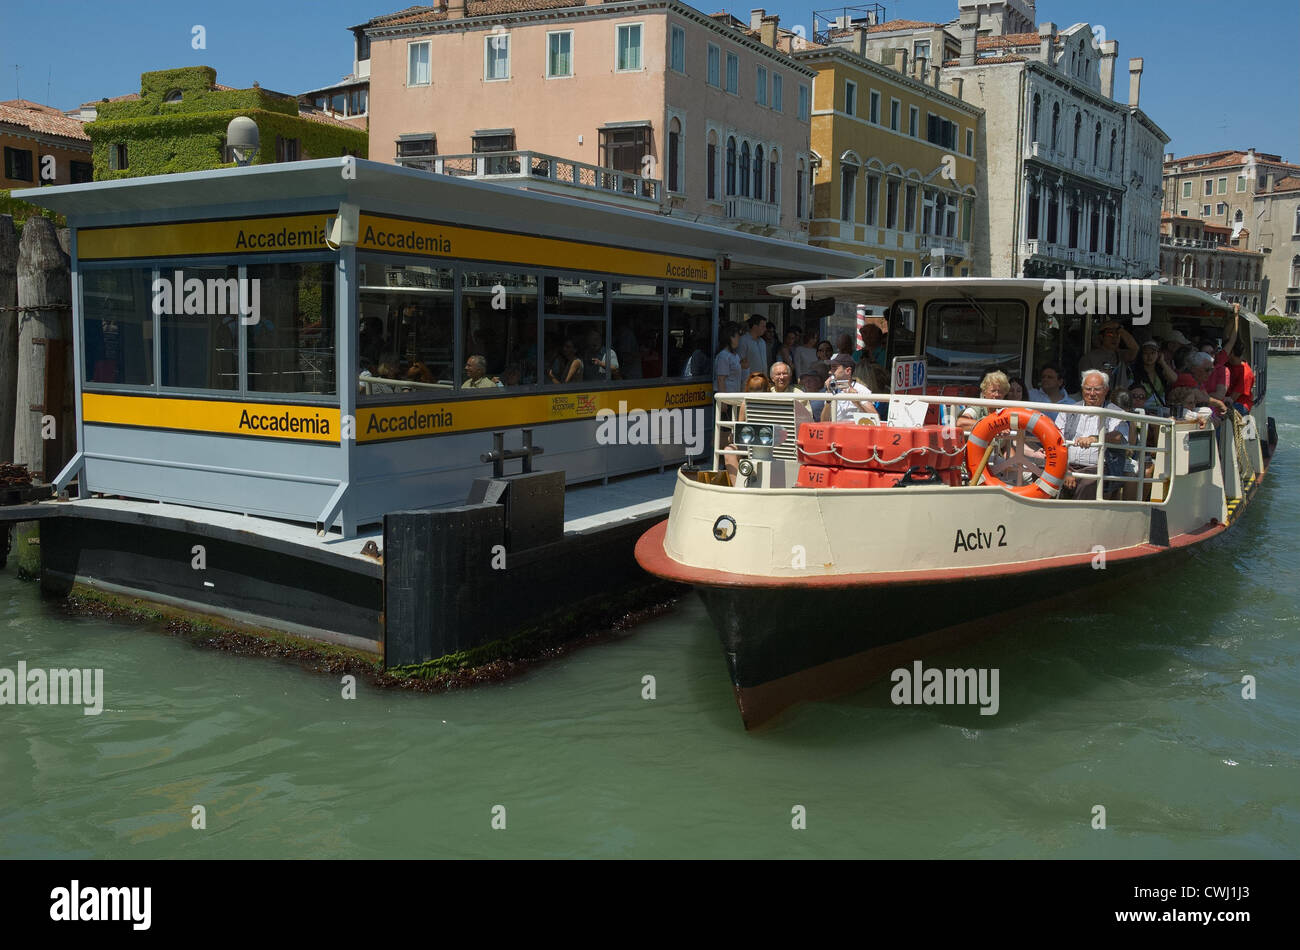 A vaporetto at the Accademia vaporetto stop on the Canal Grande, Venice. - Stock Image